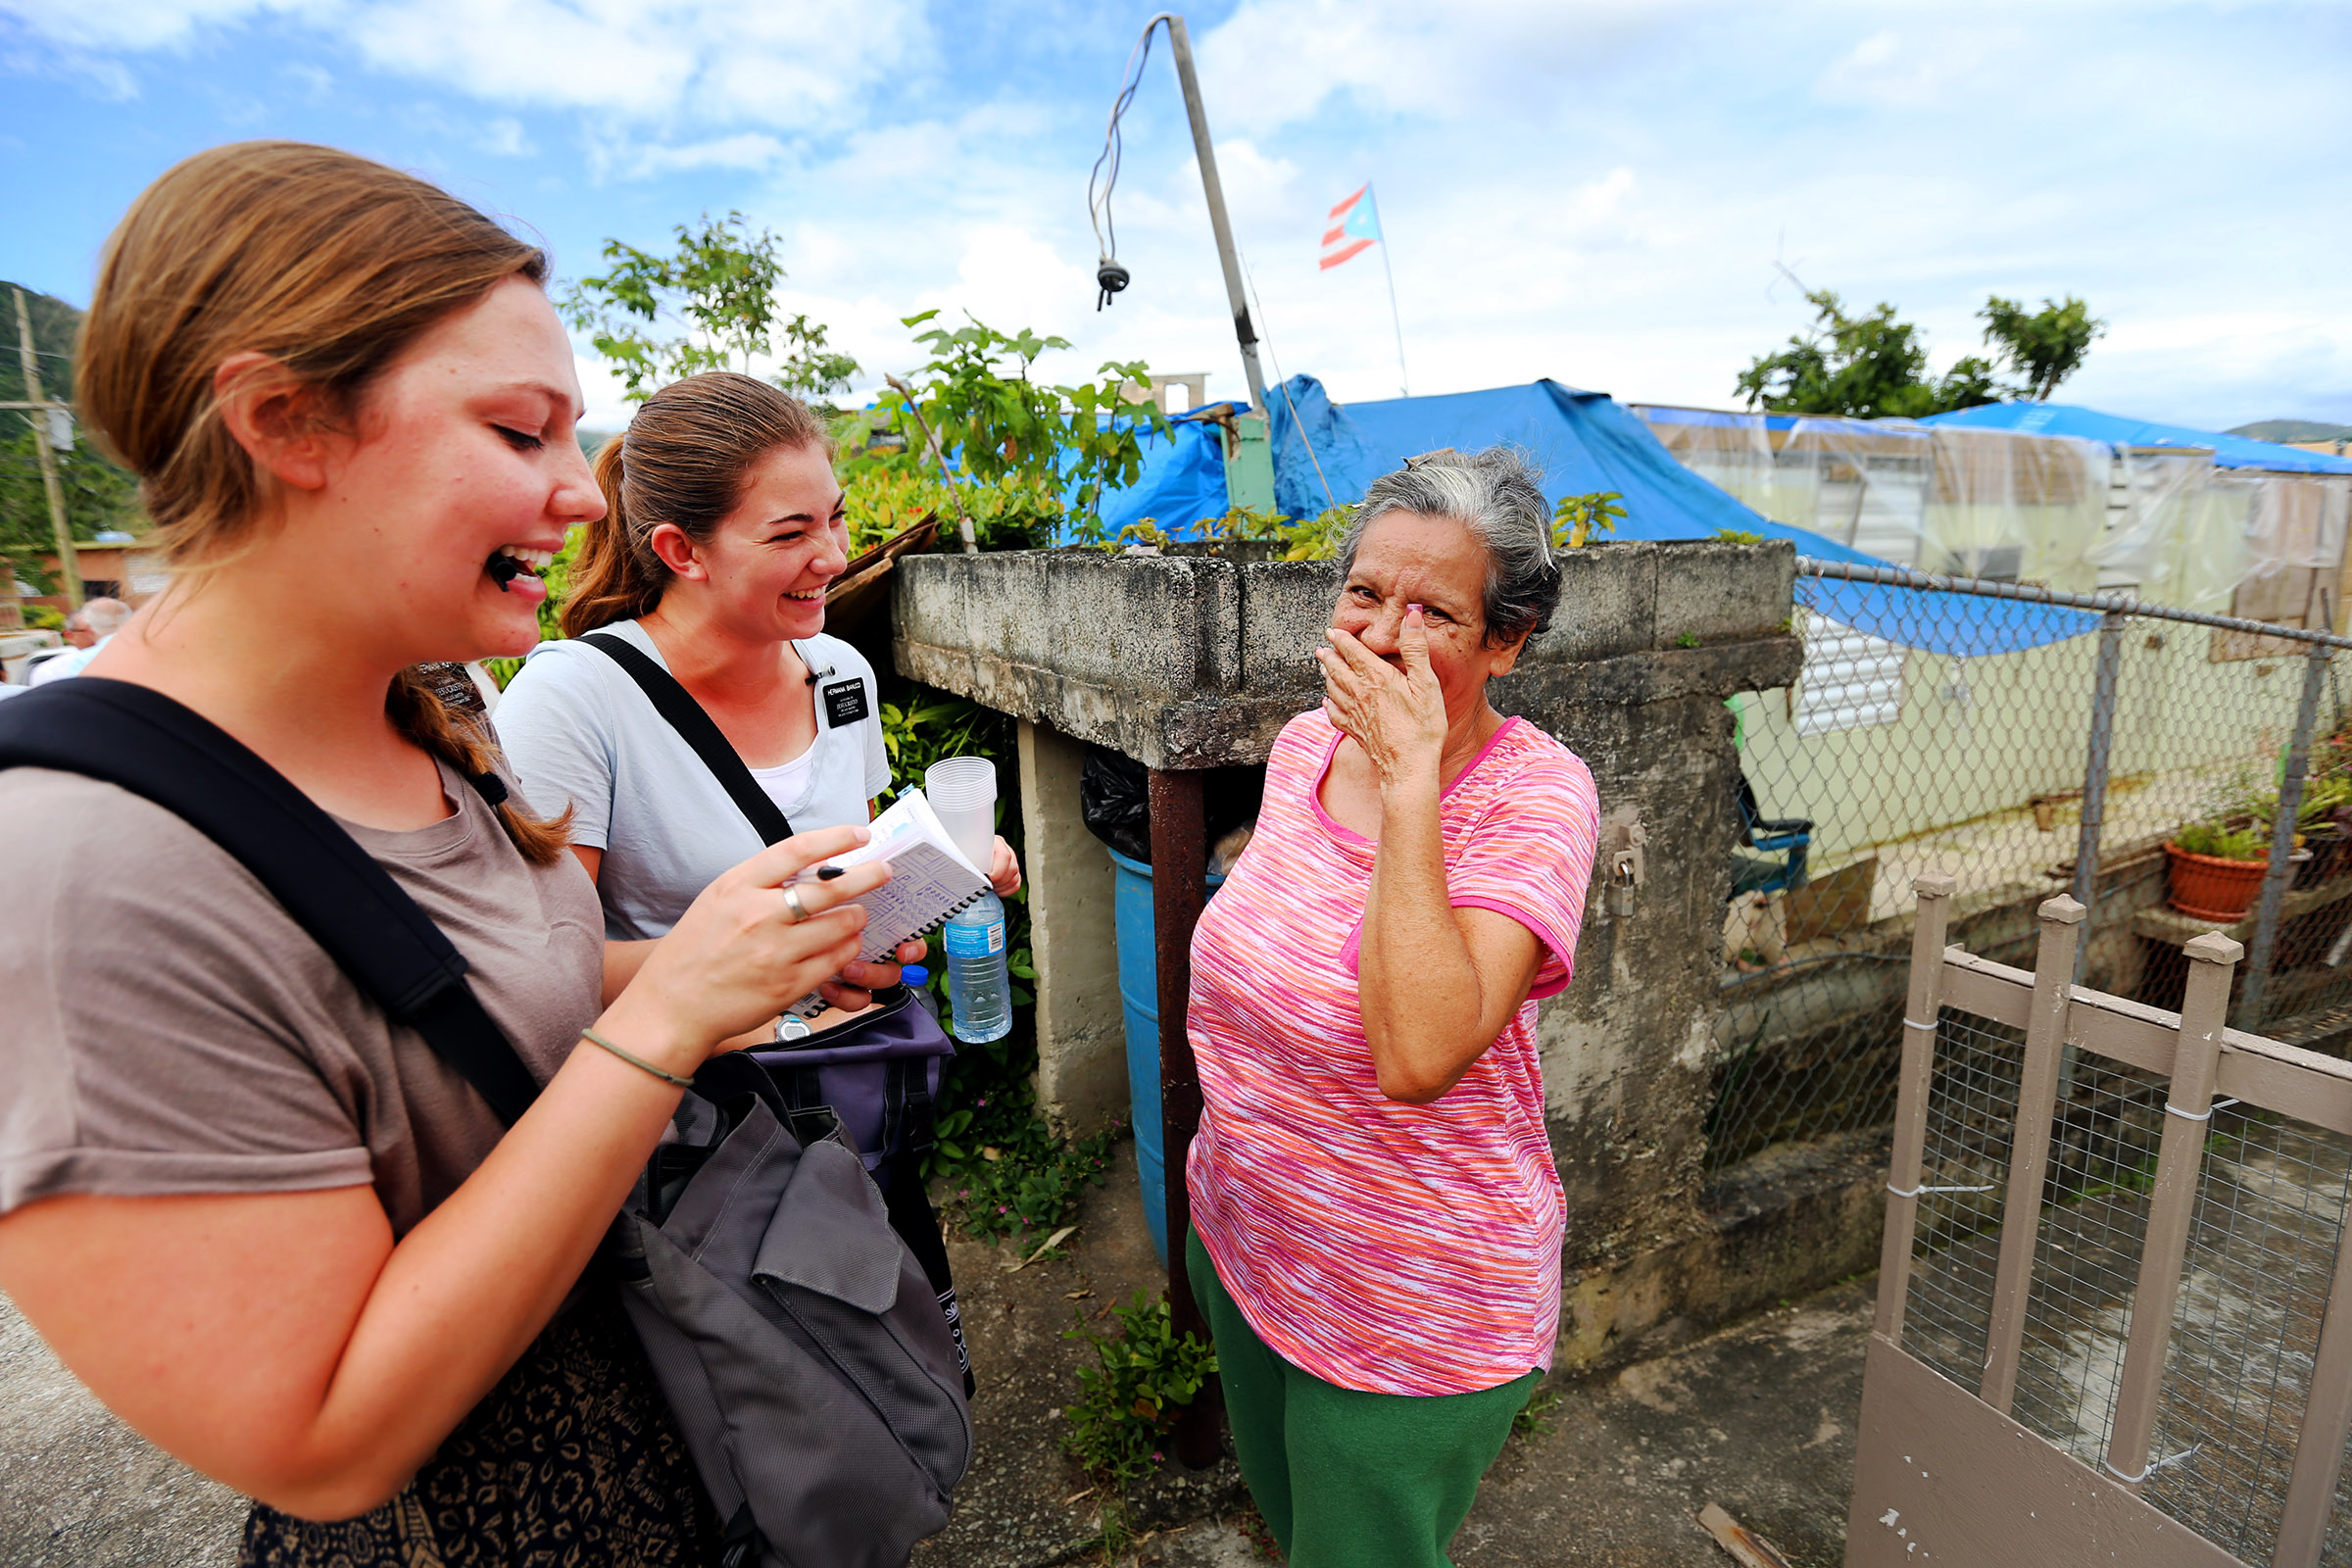 Sister's Mary Ruff from Midvale Utah, and Erin Bianucci from Layton Utah, talk with Luci Morales in Puerto Rico on Saturday, Feb. 17, 2018.